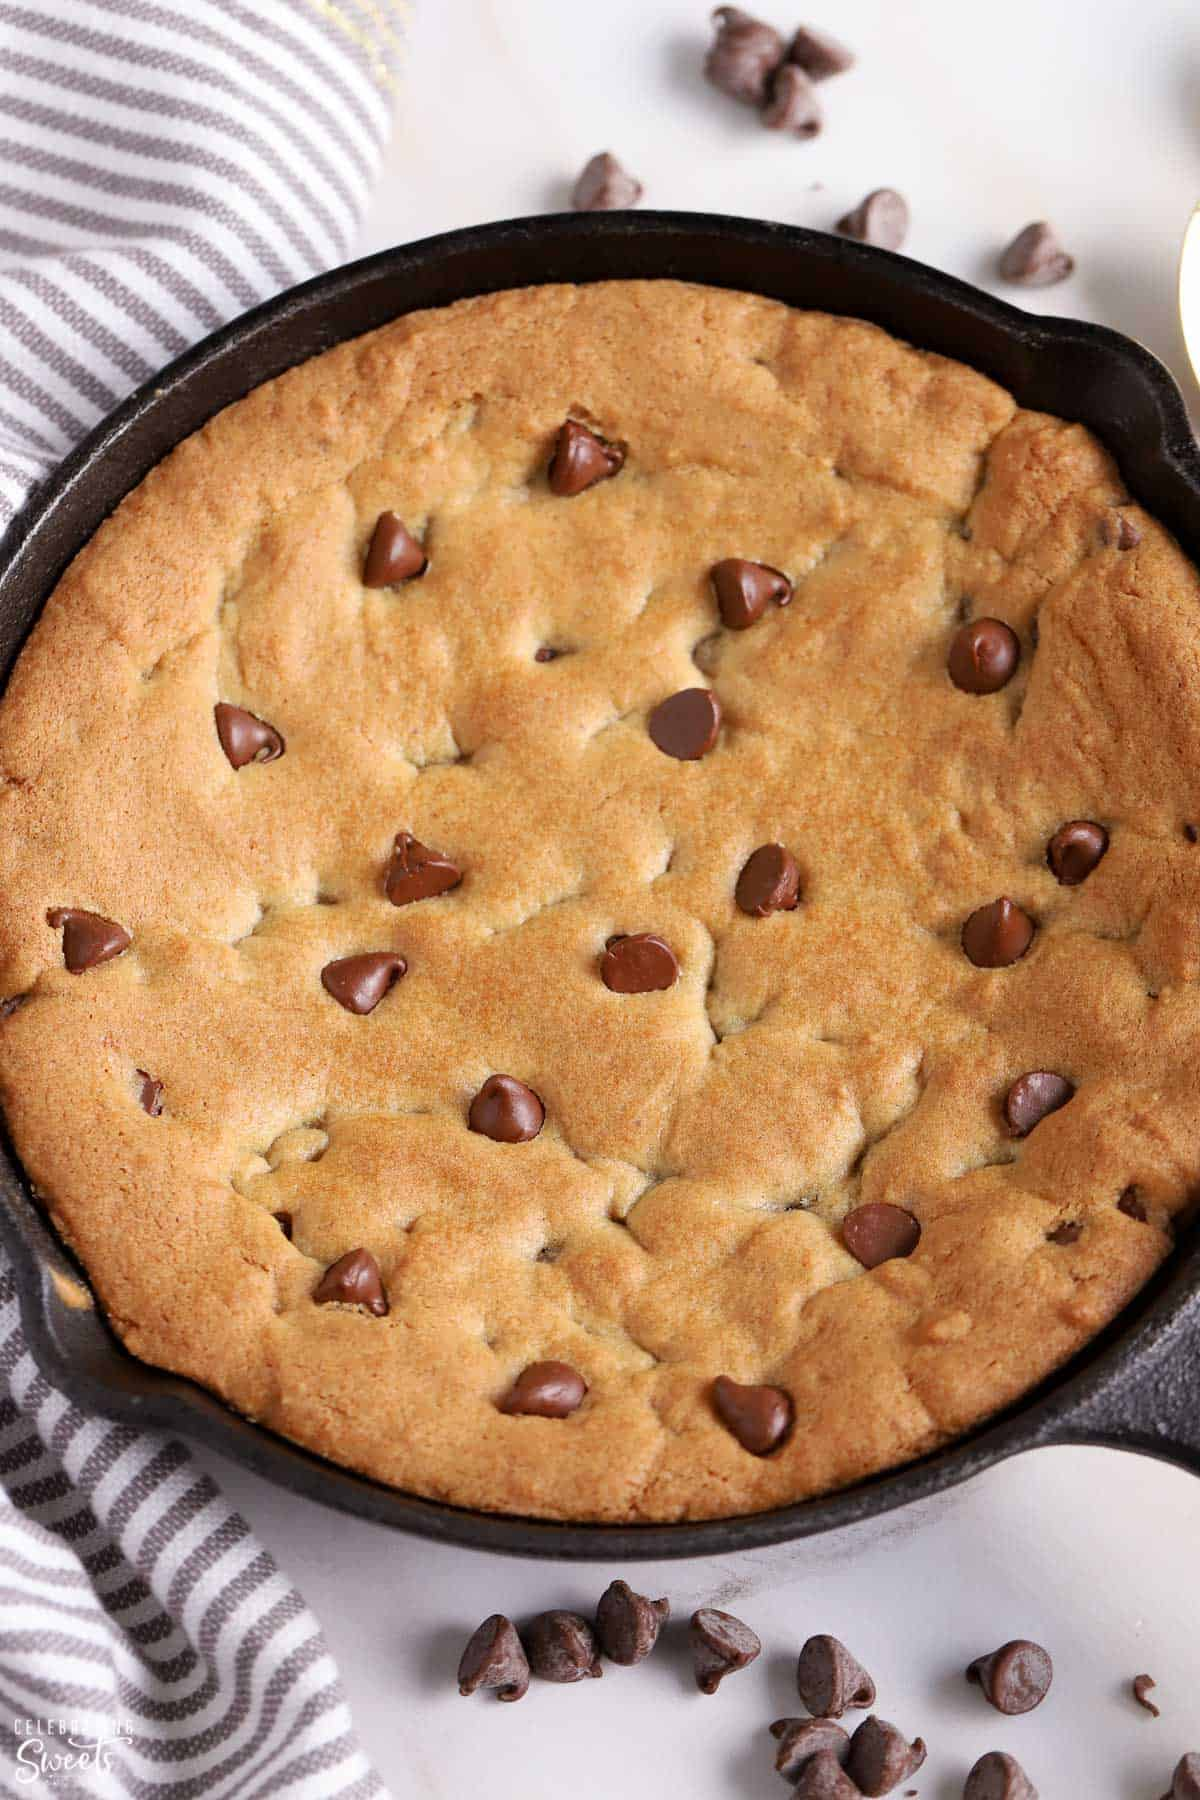 Overhead shot of a chocolate chip skillet cookie in a cast iron skillet.